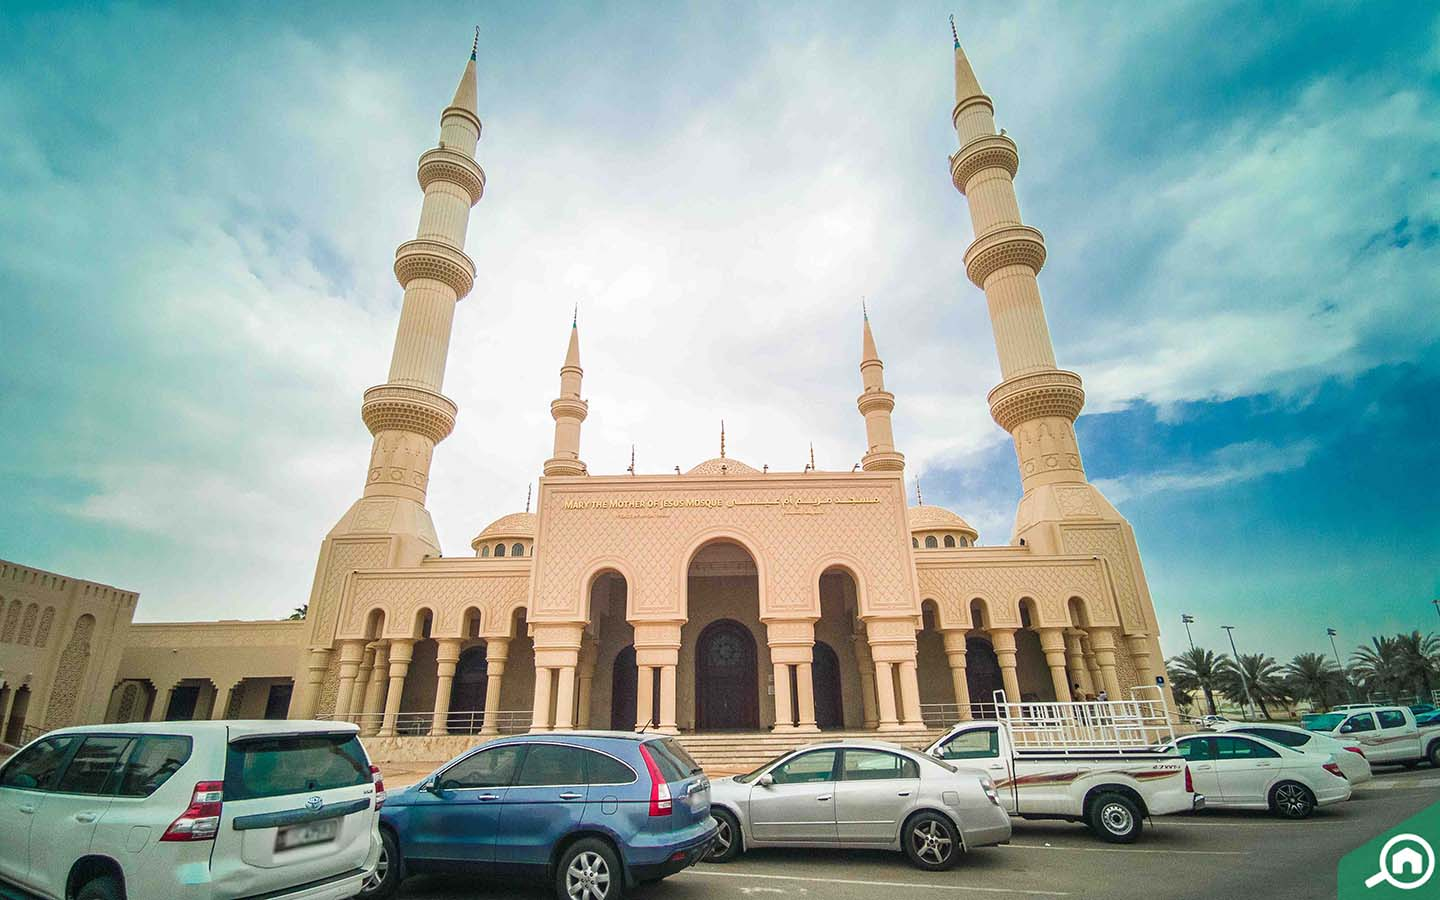 Outside view of Mary Mother of Jesus Mosque